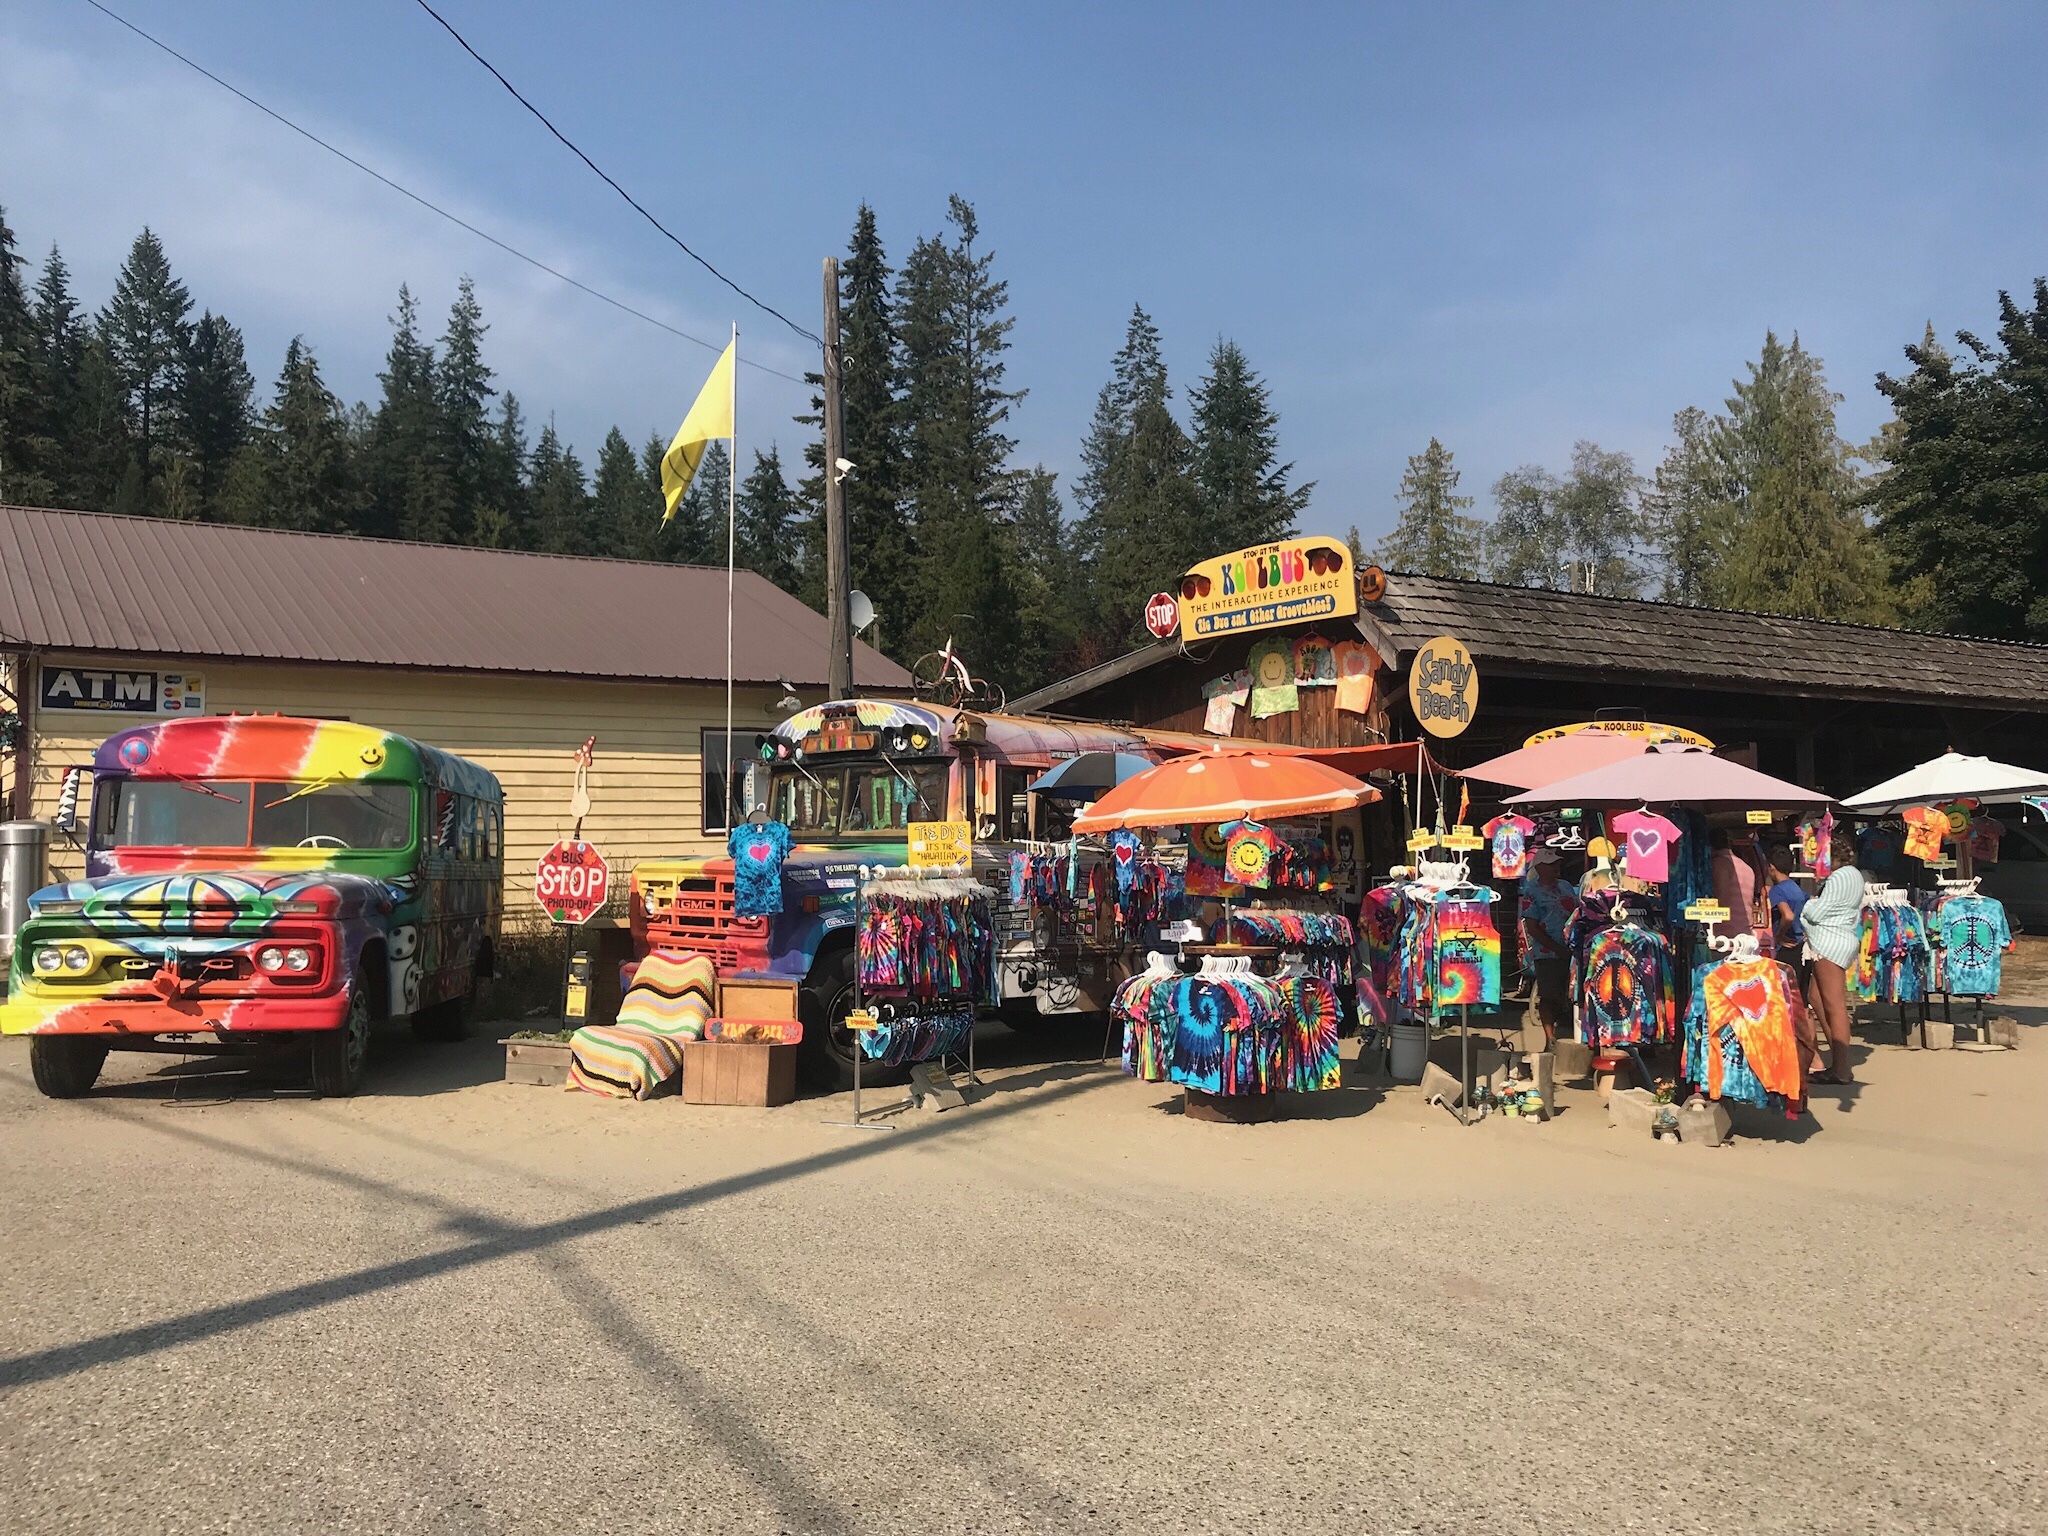 The Kool Bus tie dye outlet next to the Balfour ferry staging area. Someone call Papaboop; I bet he could find something here.